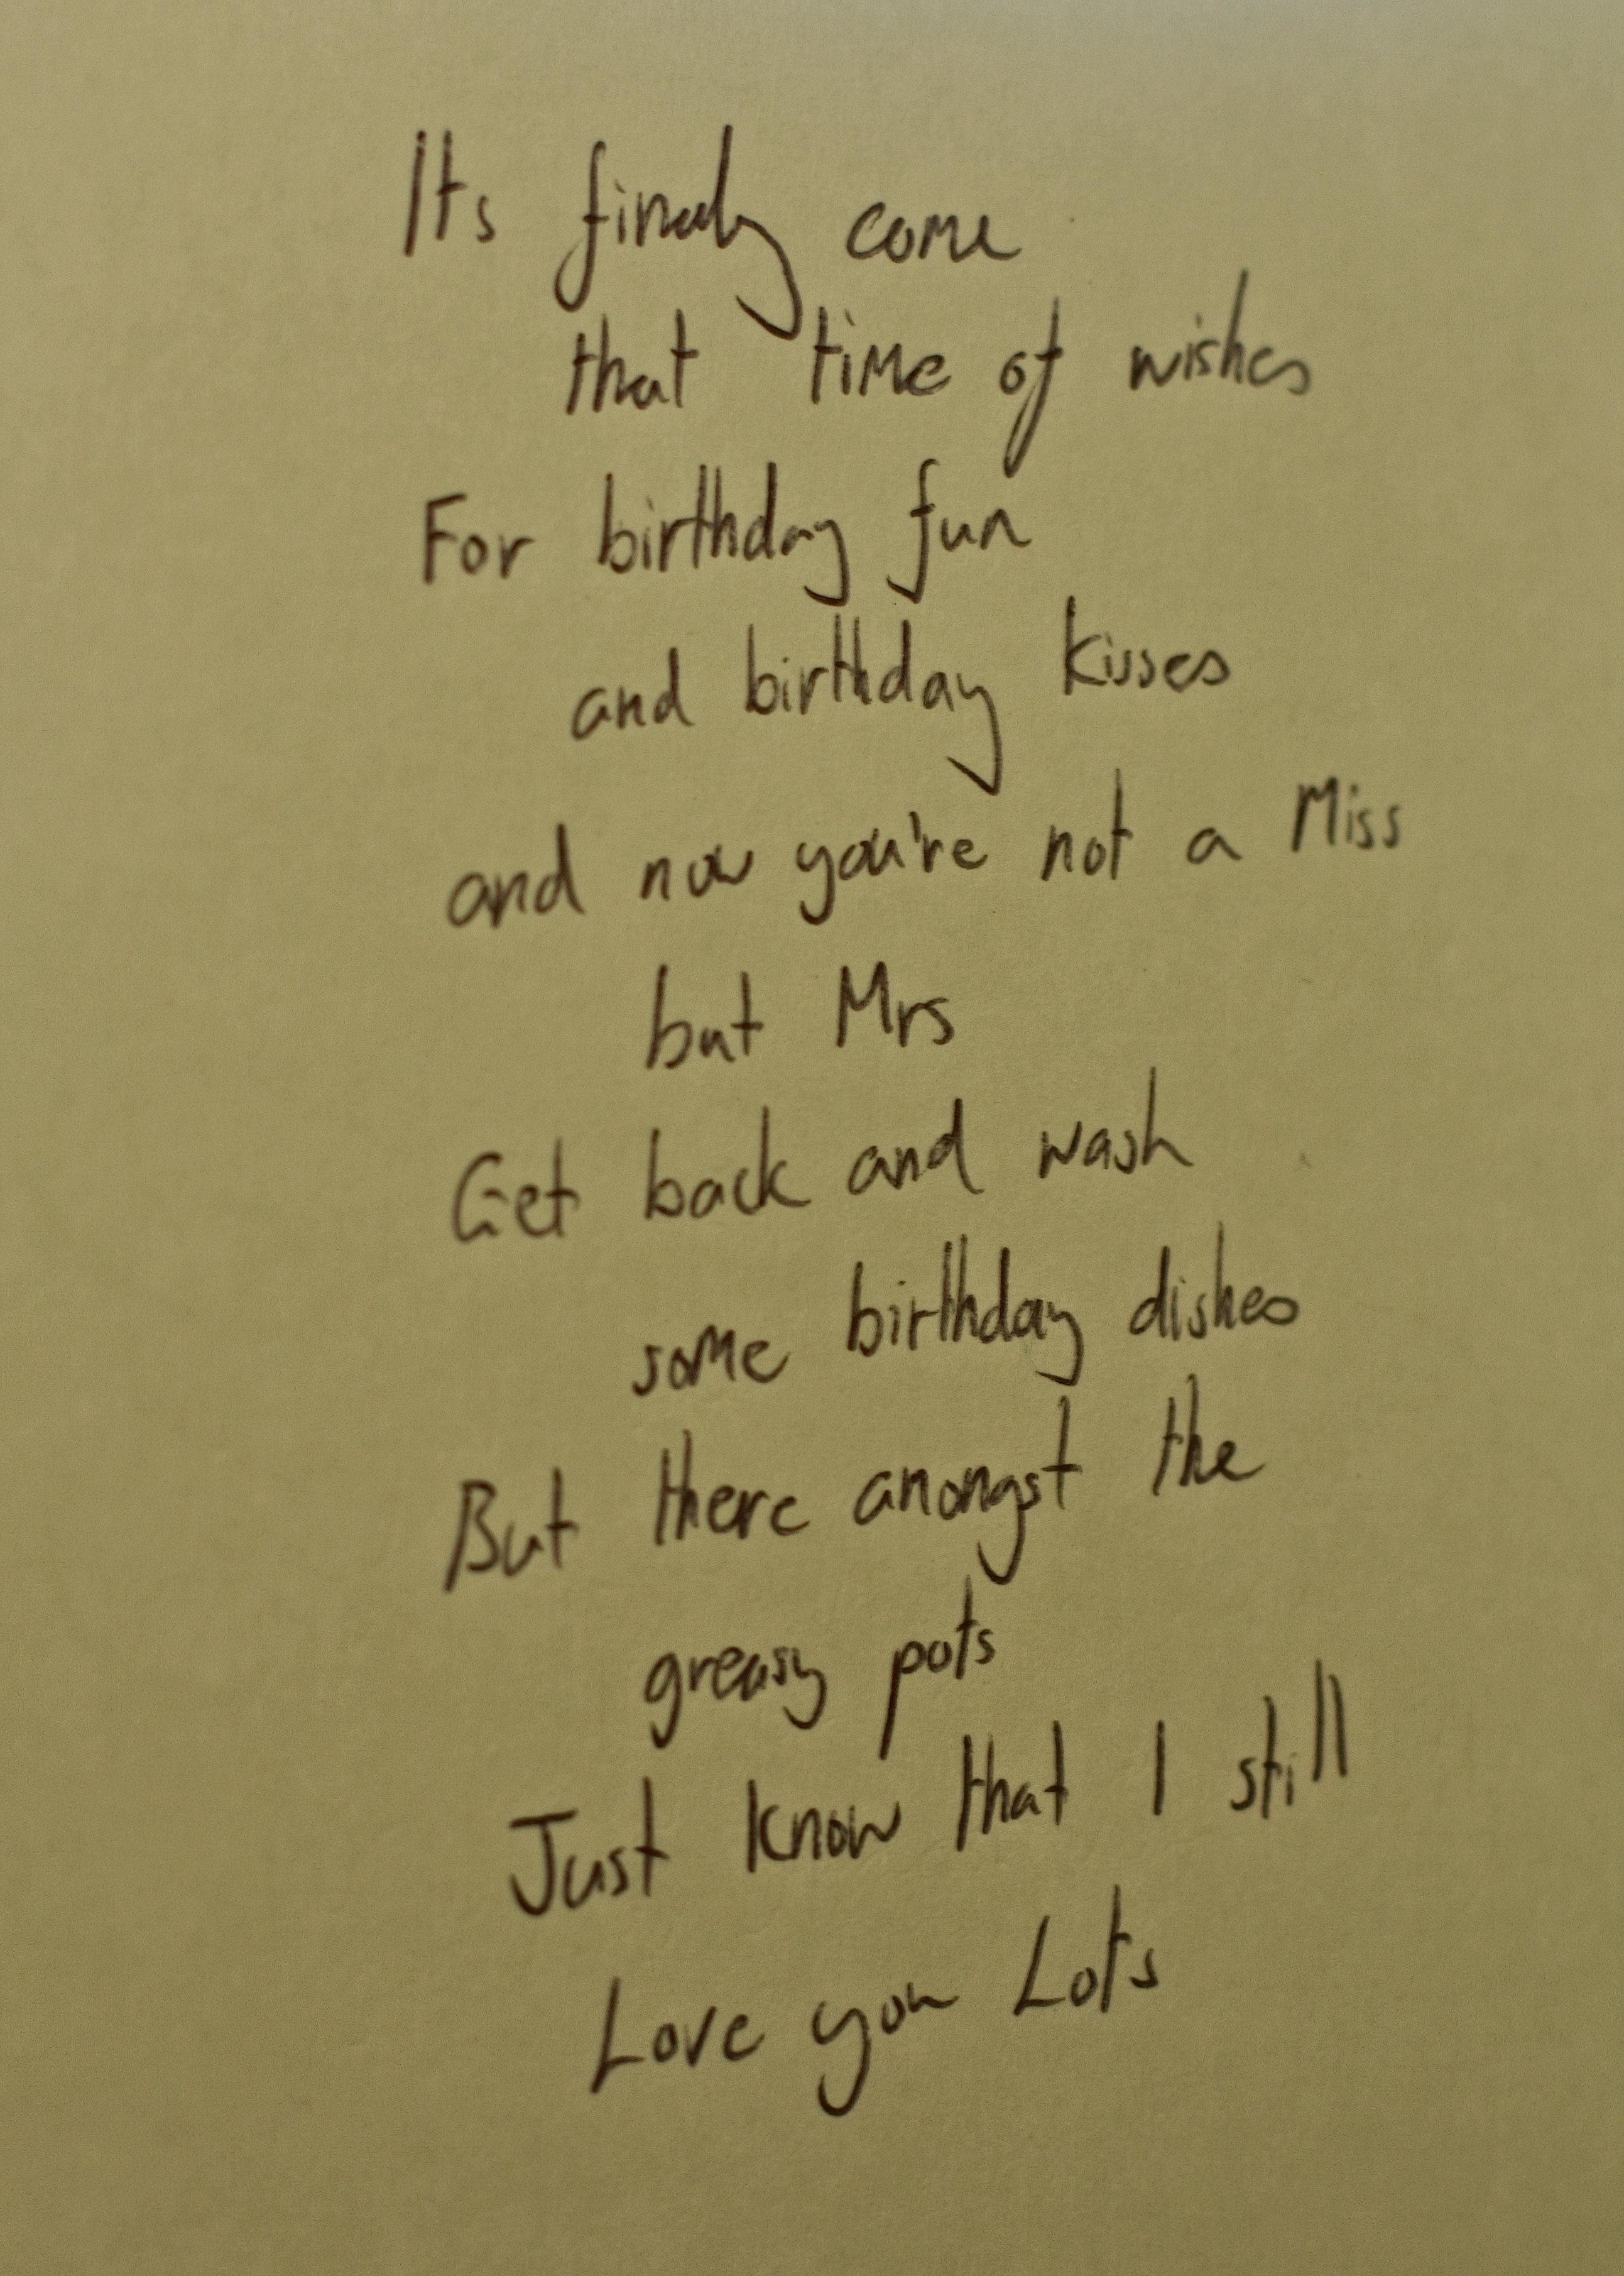 Poems for husbands birthday